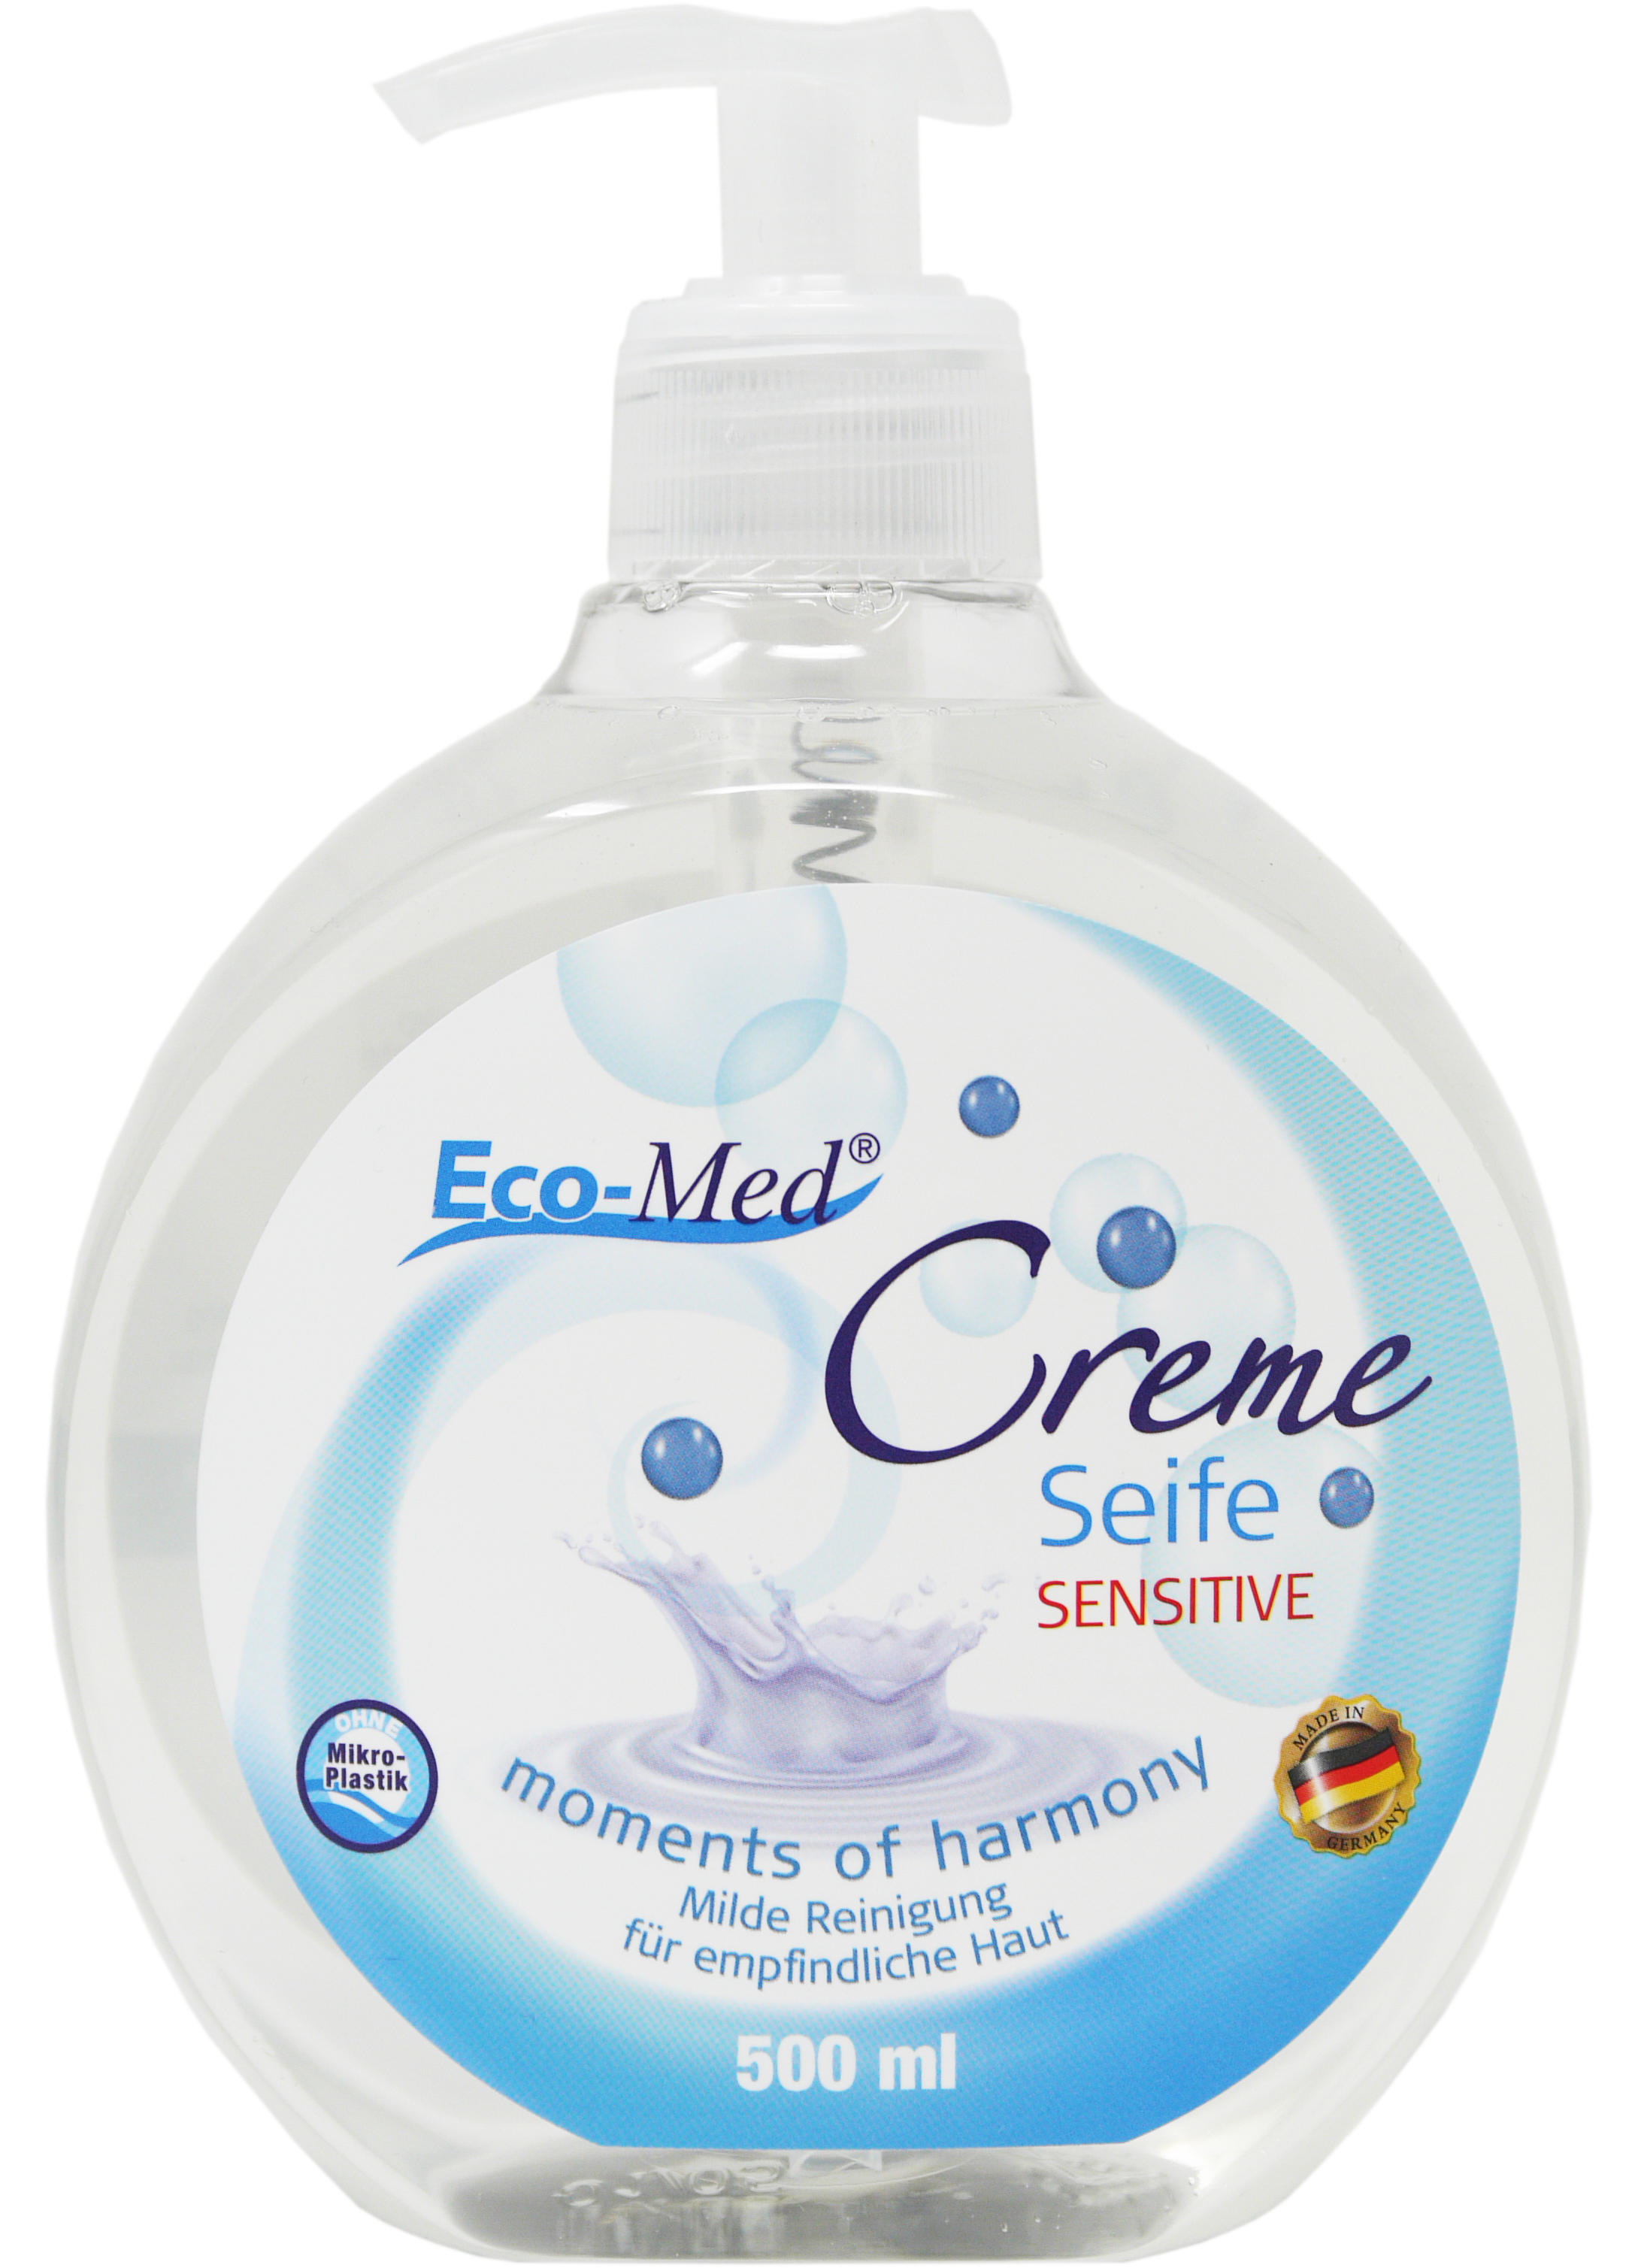 01620 - Eco-Med Cremeseife 500 ml - moments of harmony - sensitive